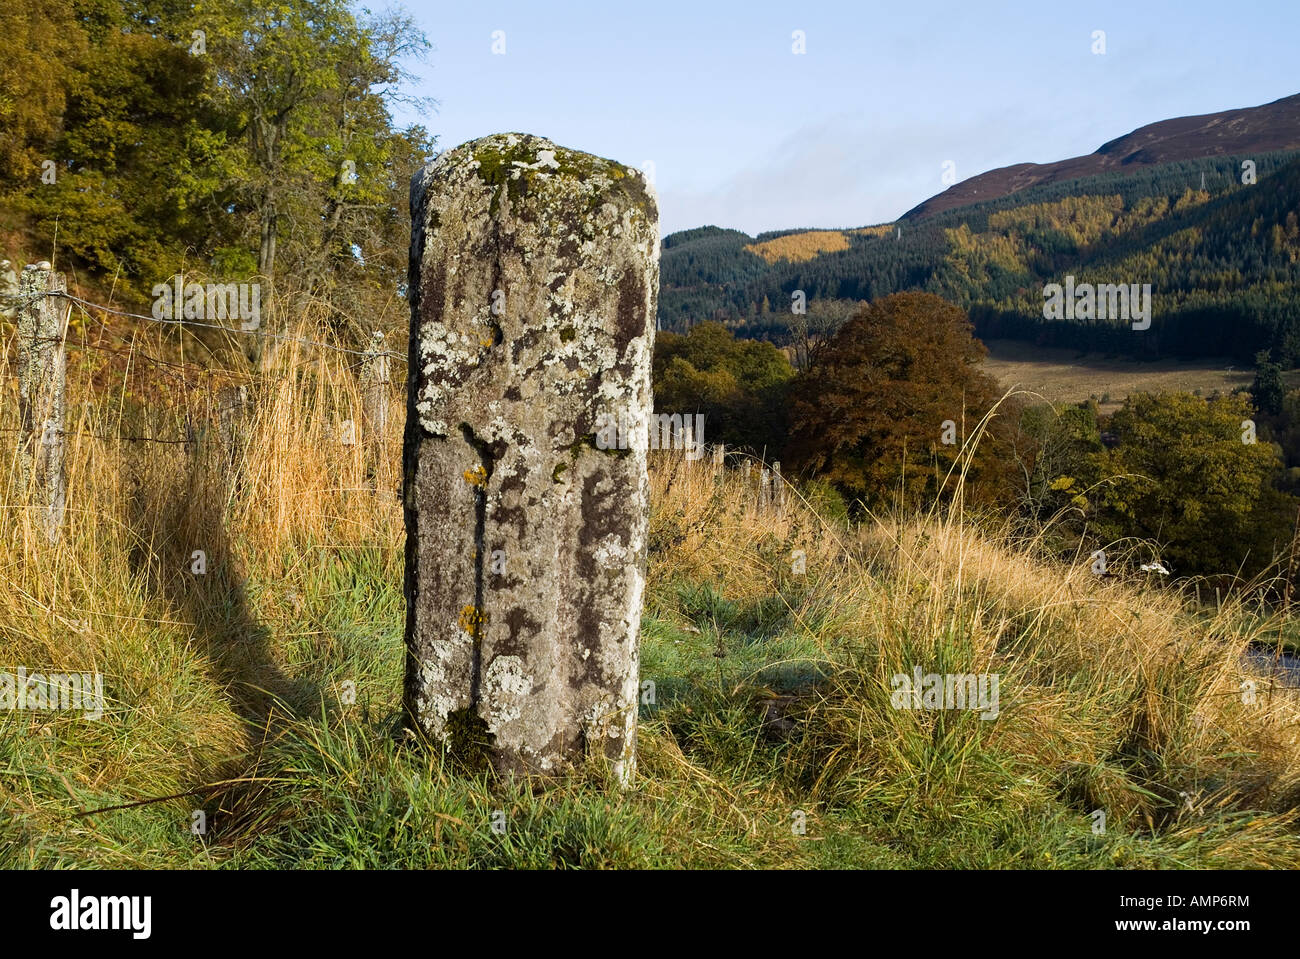 dh Priests Stone monolith LOCH FASKALLY PERTHSHIRE SCOTLAND Pictish Celtic cross standing scottish highlands pict carving slab Stock Photo